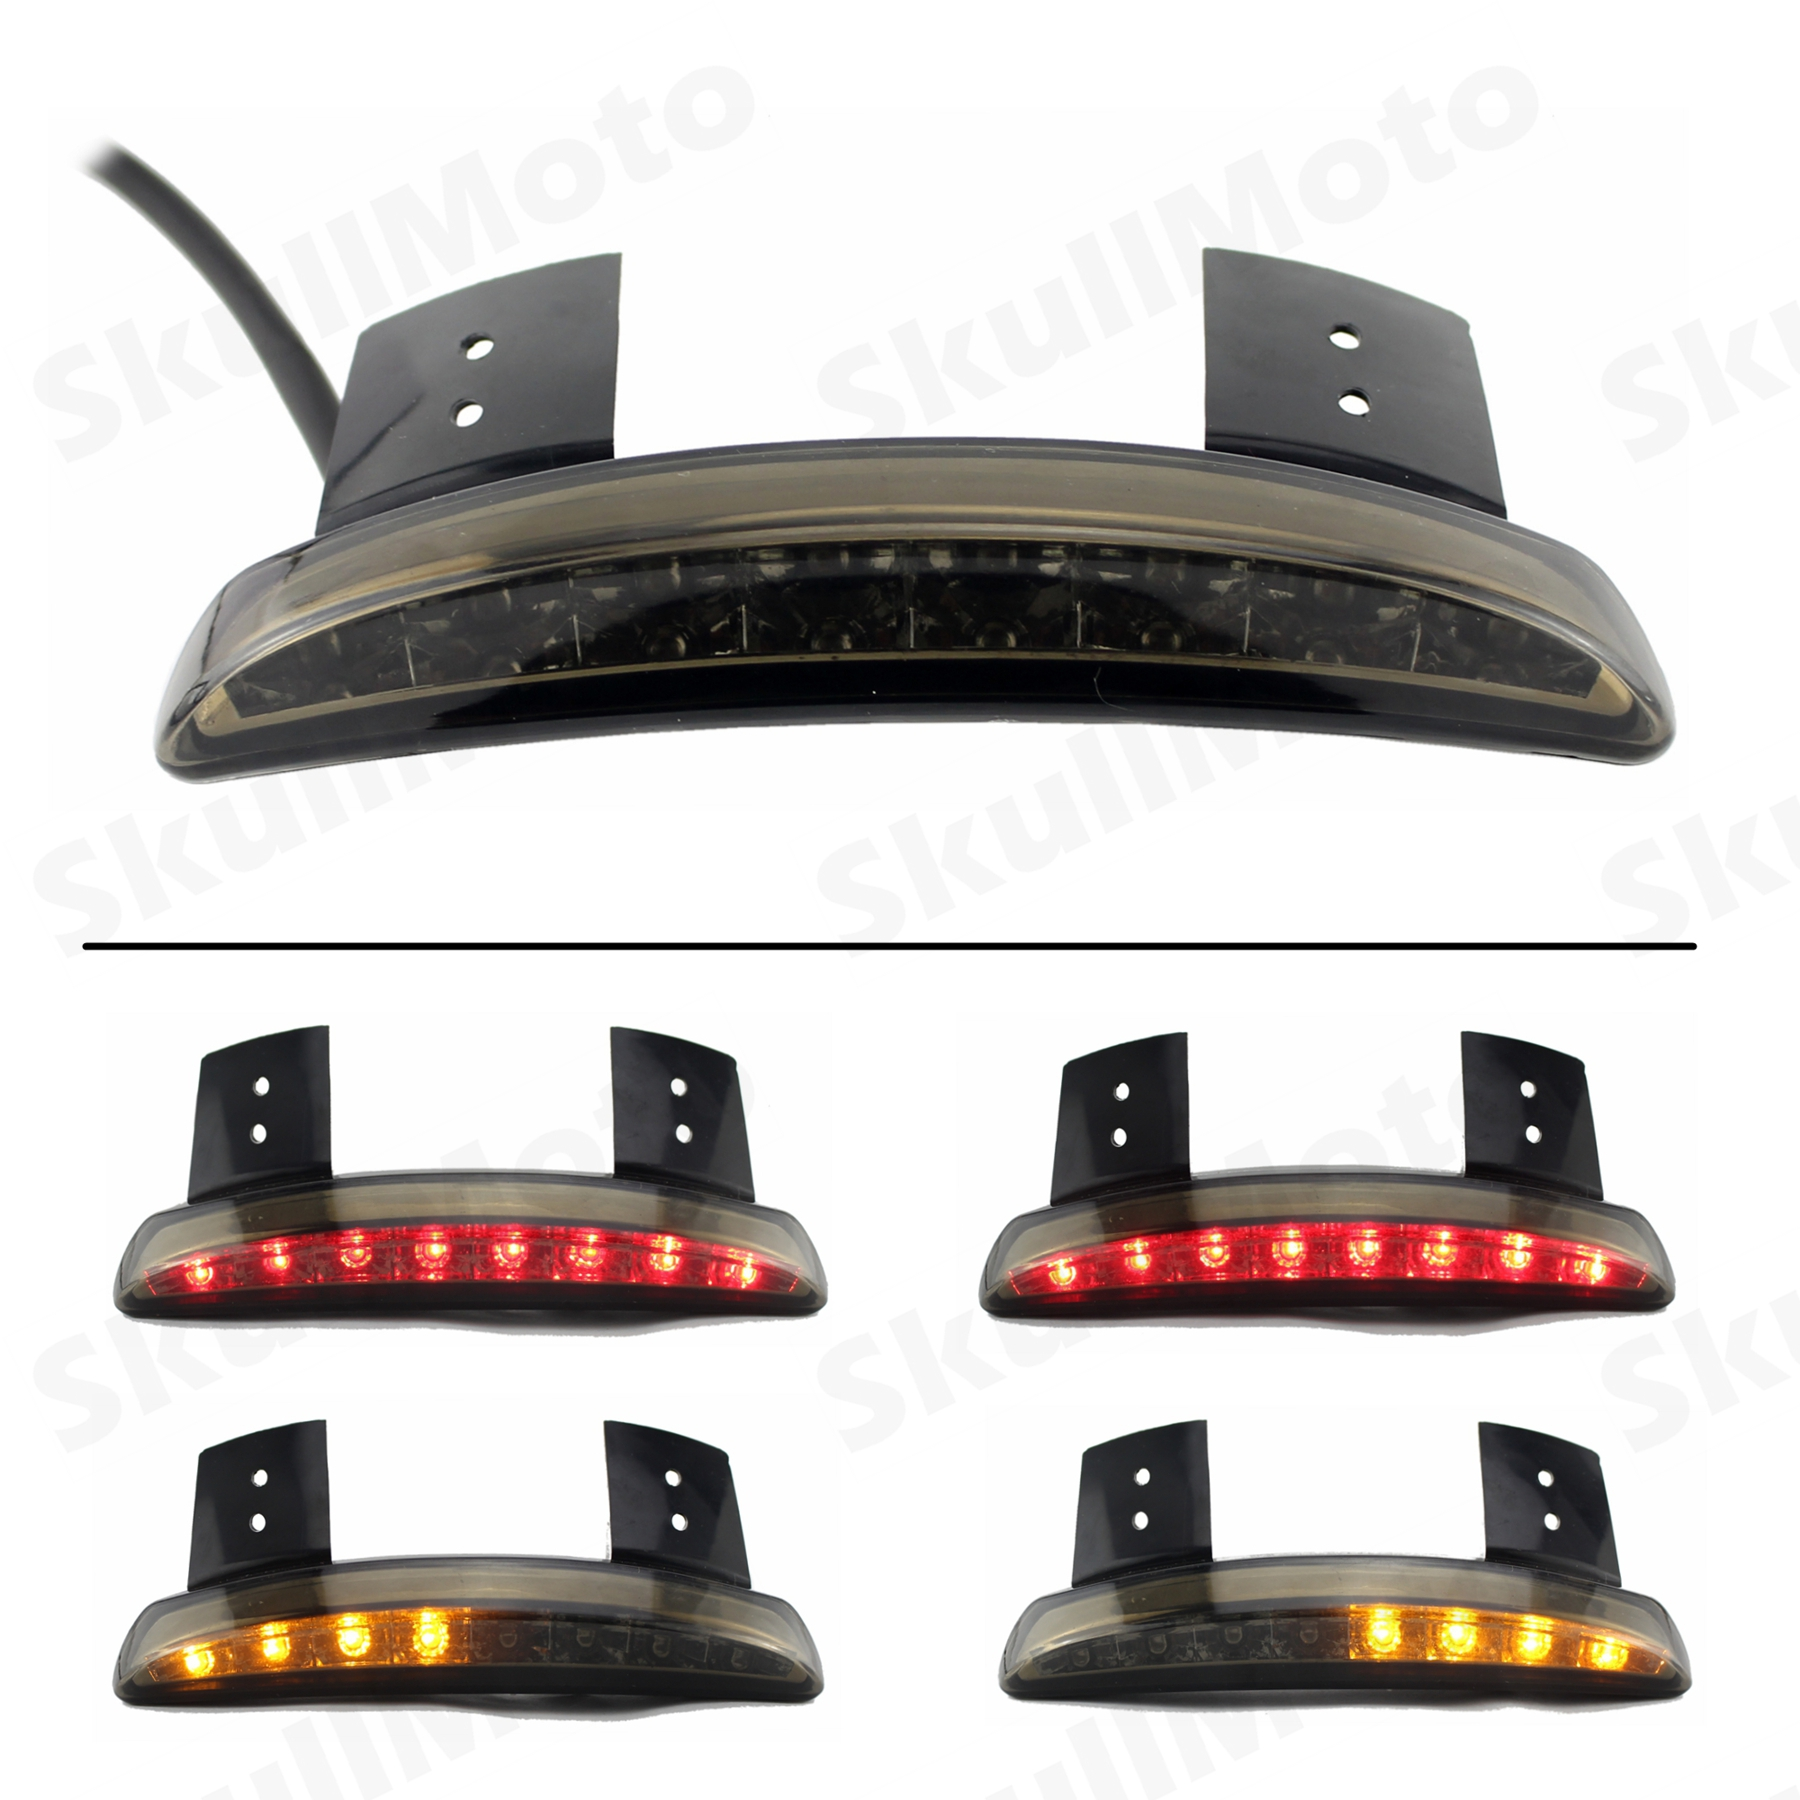 Responsible Brand New Free Shipping Clear Lens Rear Fender Edge Led Tail Light Fits For Harle Davidson Iron 883 Xl883n Xl1200n Chopped Street Price Back To Search Resultshome